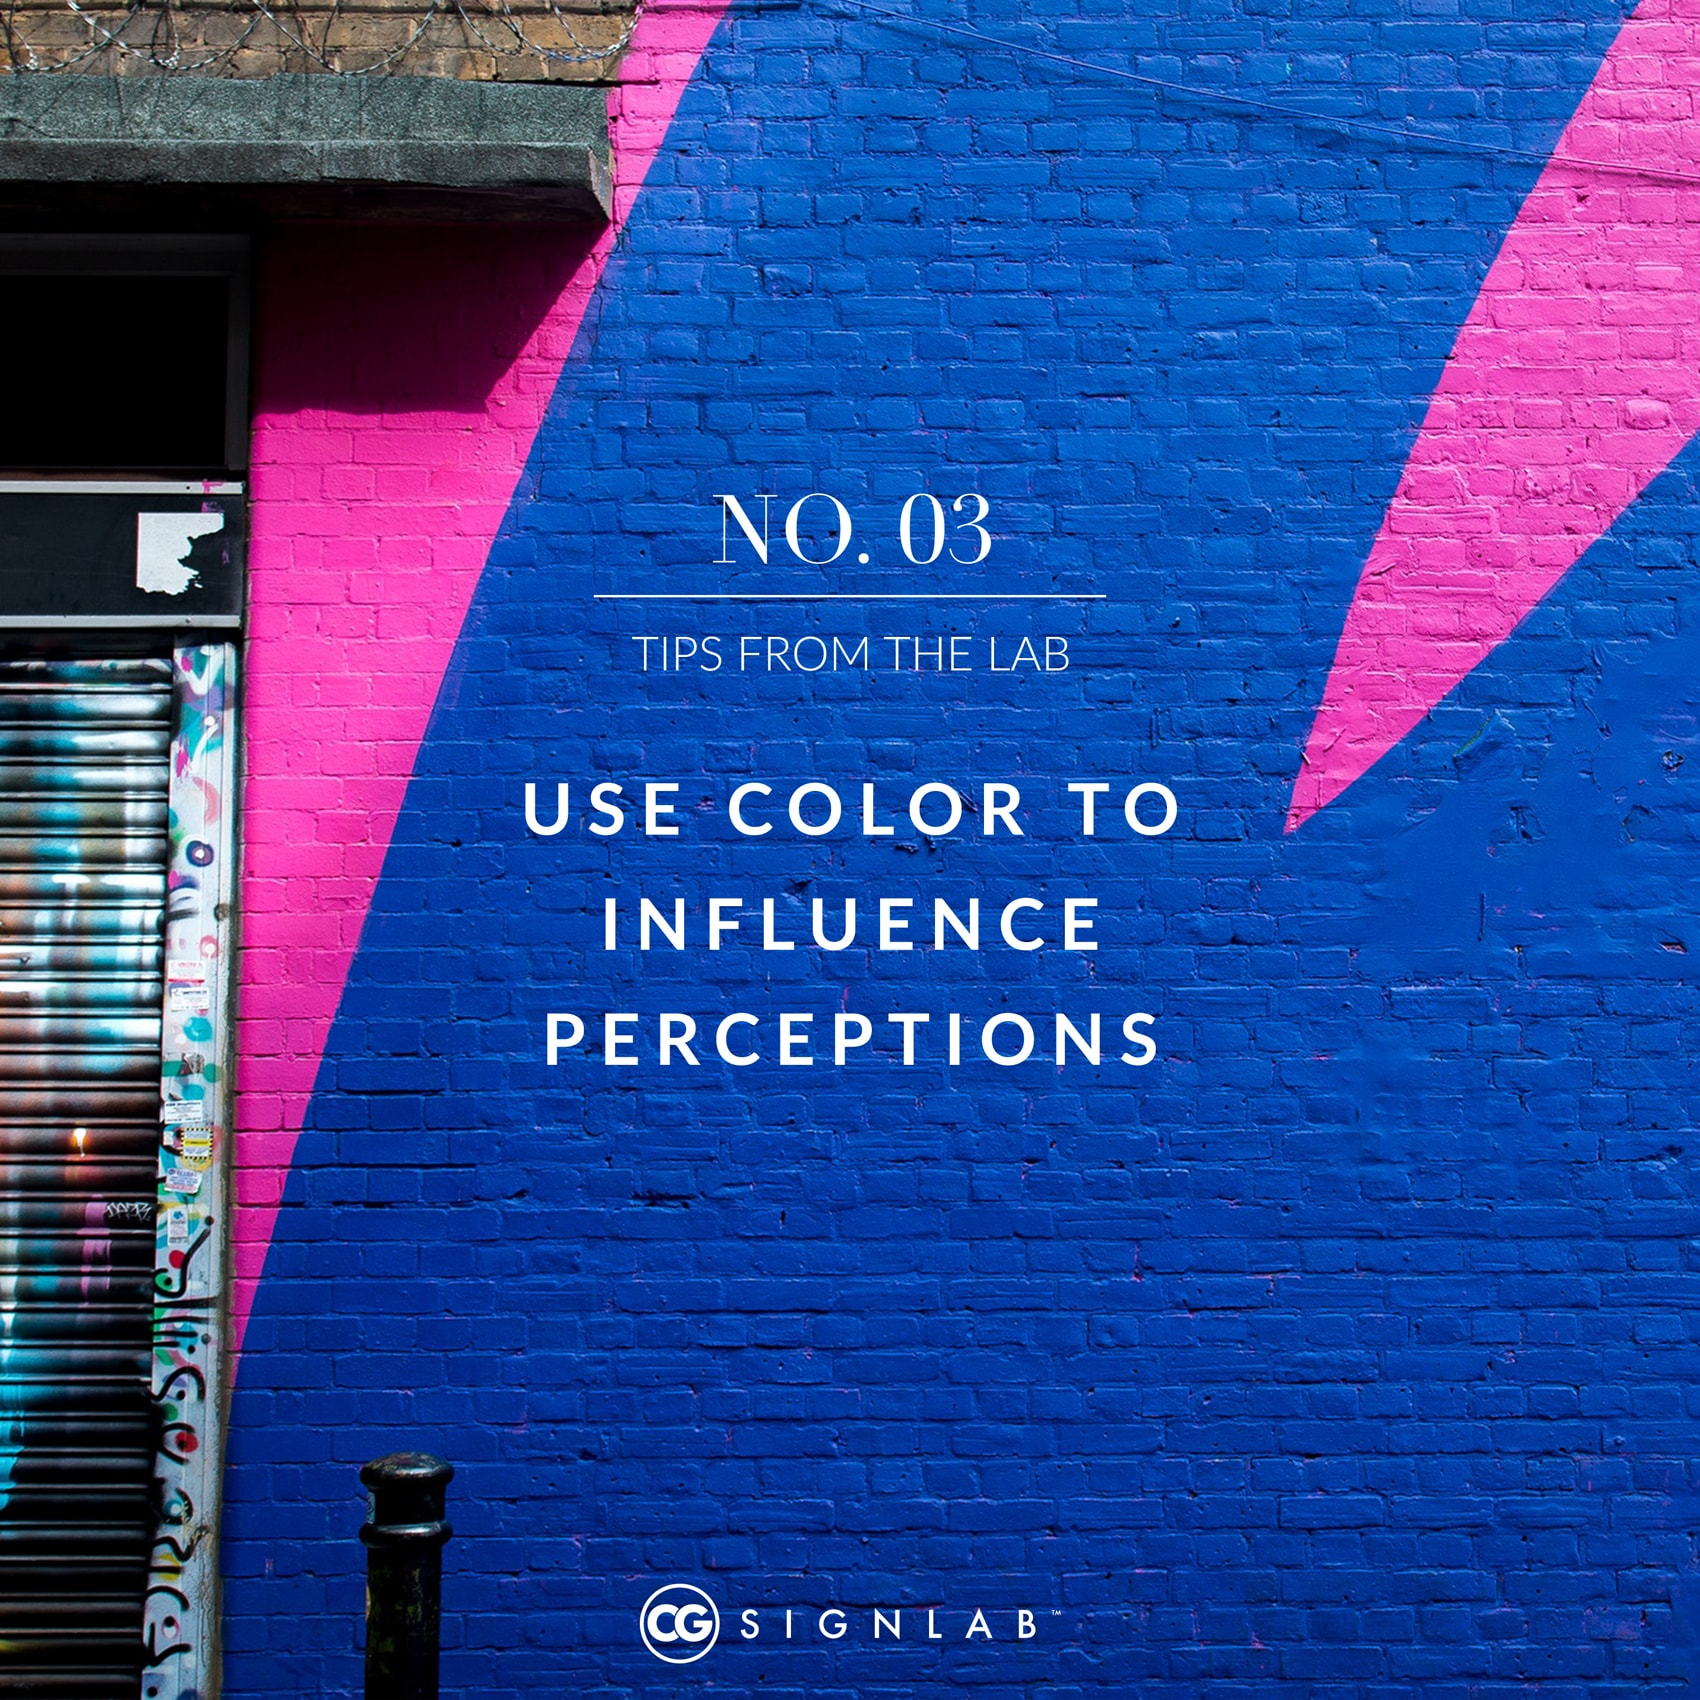 Use Color to Influence Perceptions